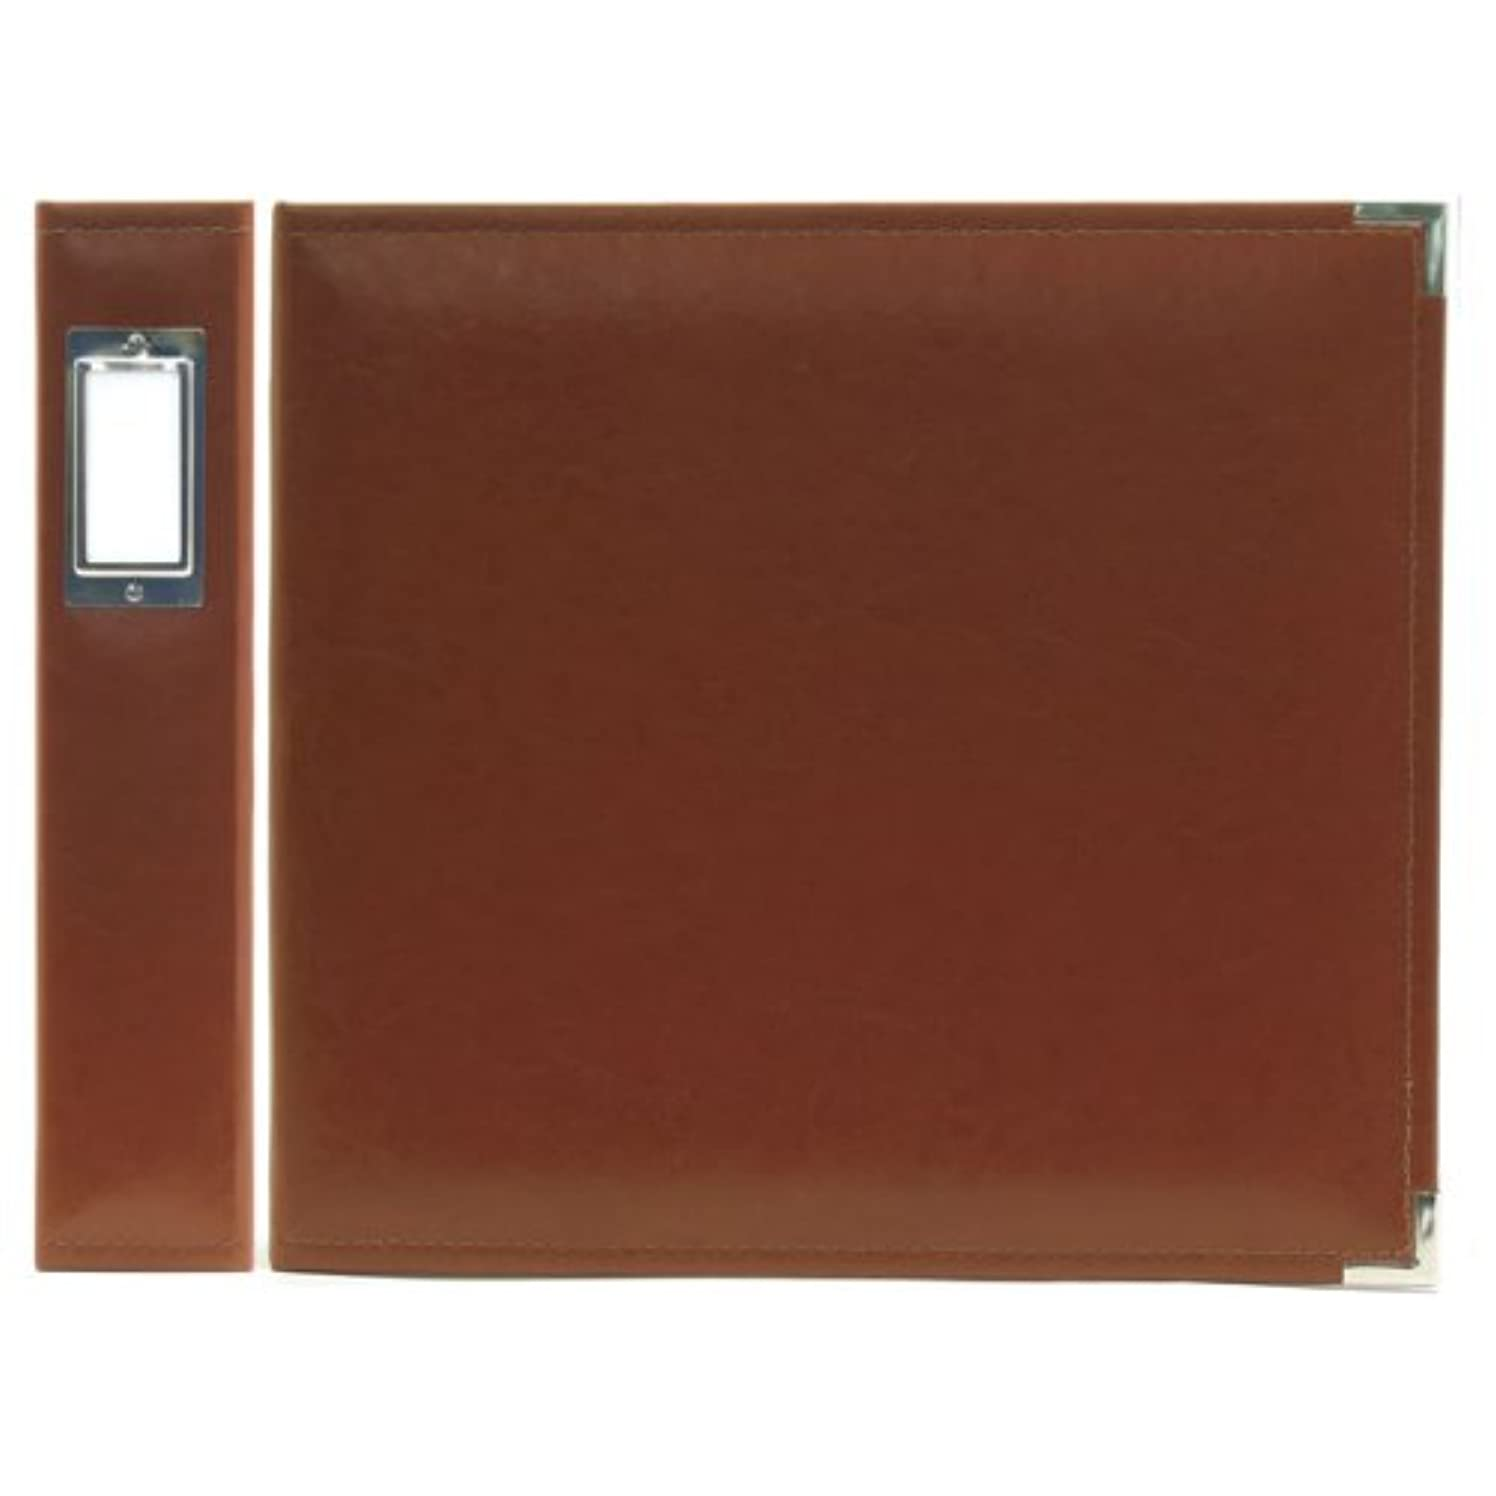 We R Memory Keepers Classic Leather 3-Ring Binder Album, 12 by 12-Inch, Dark Chocolate